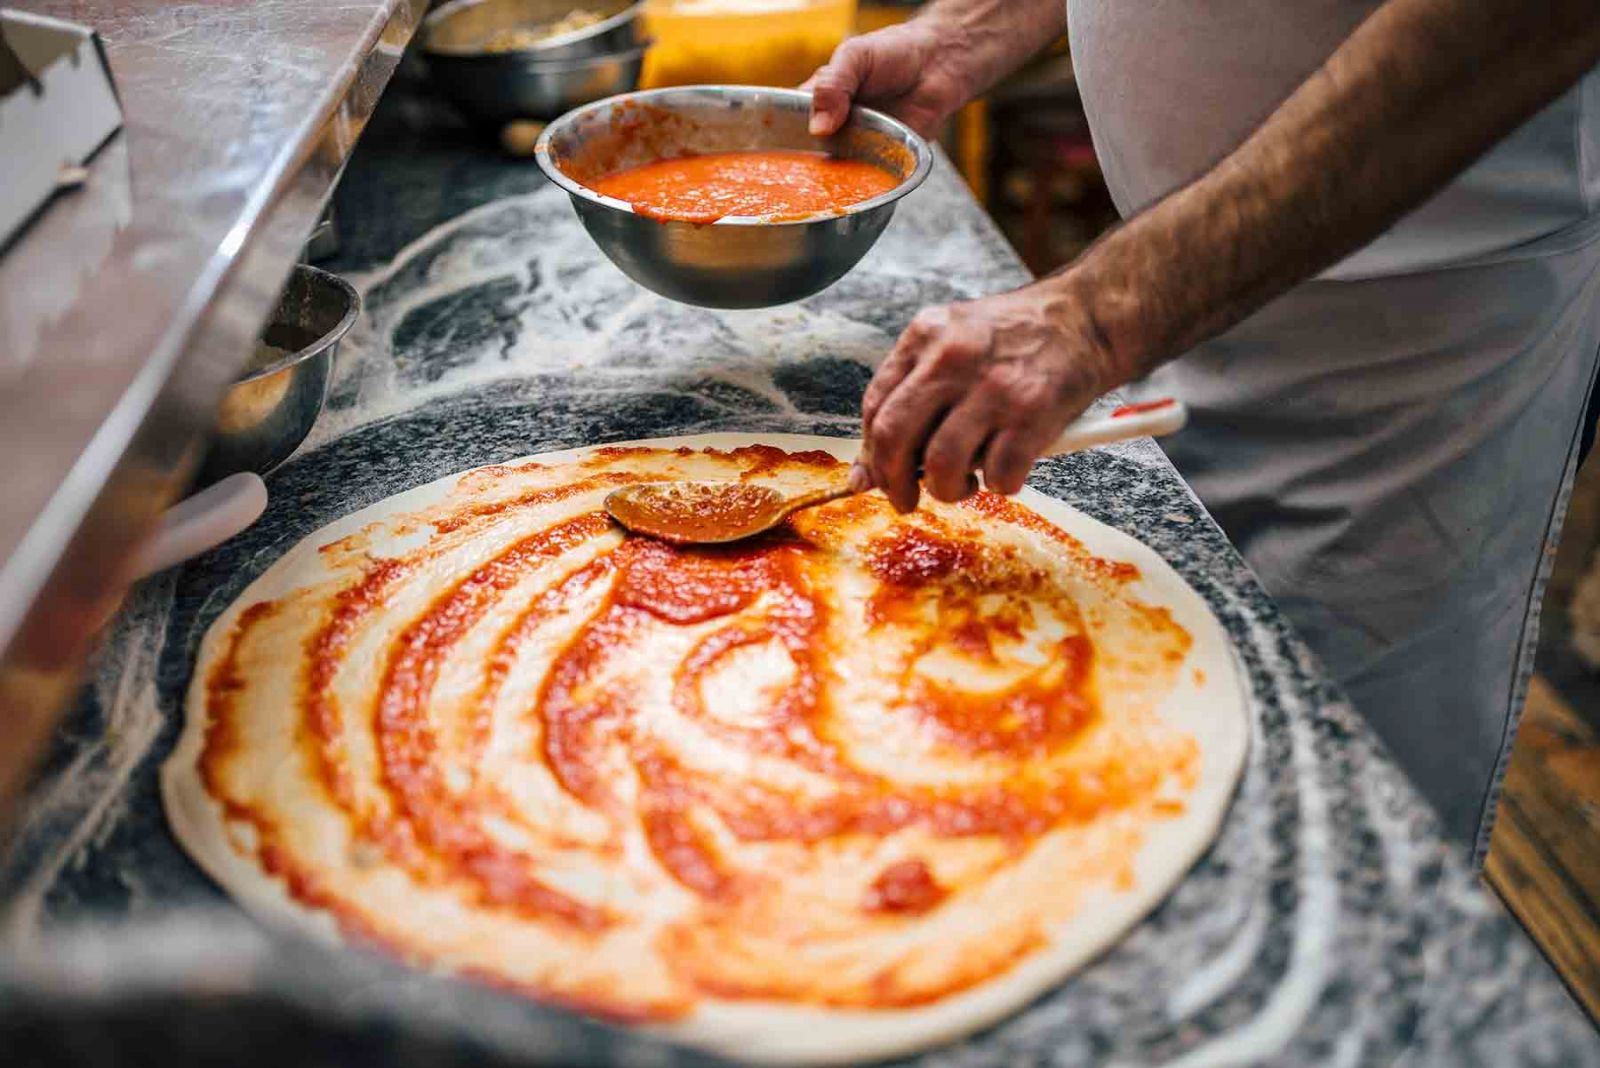 Chef spreading sauce on a pizza crust